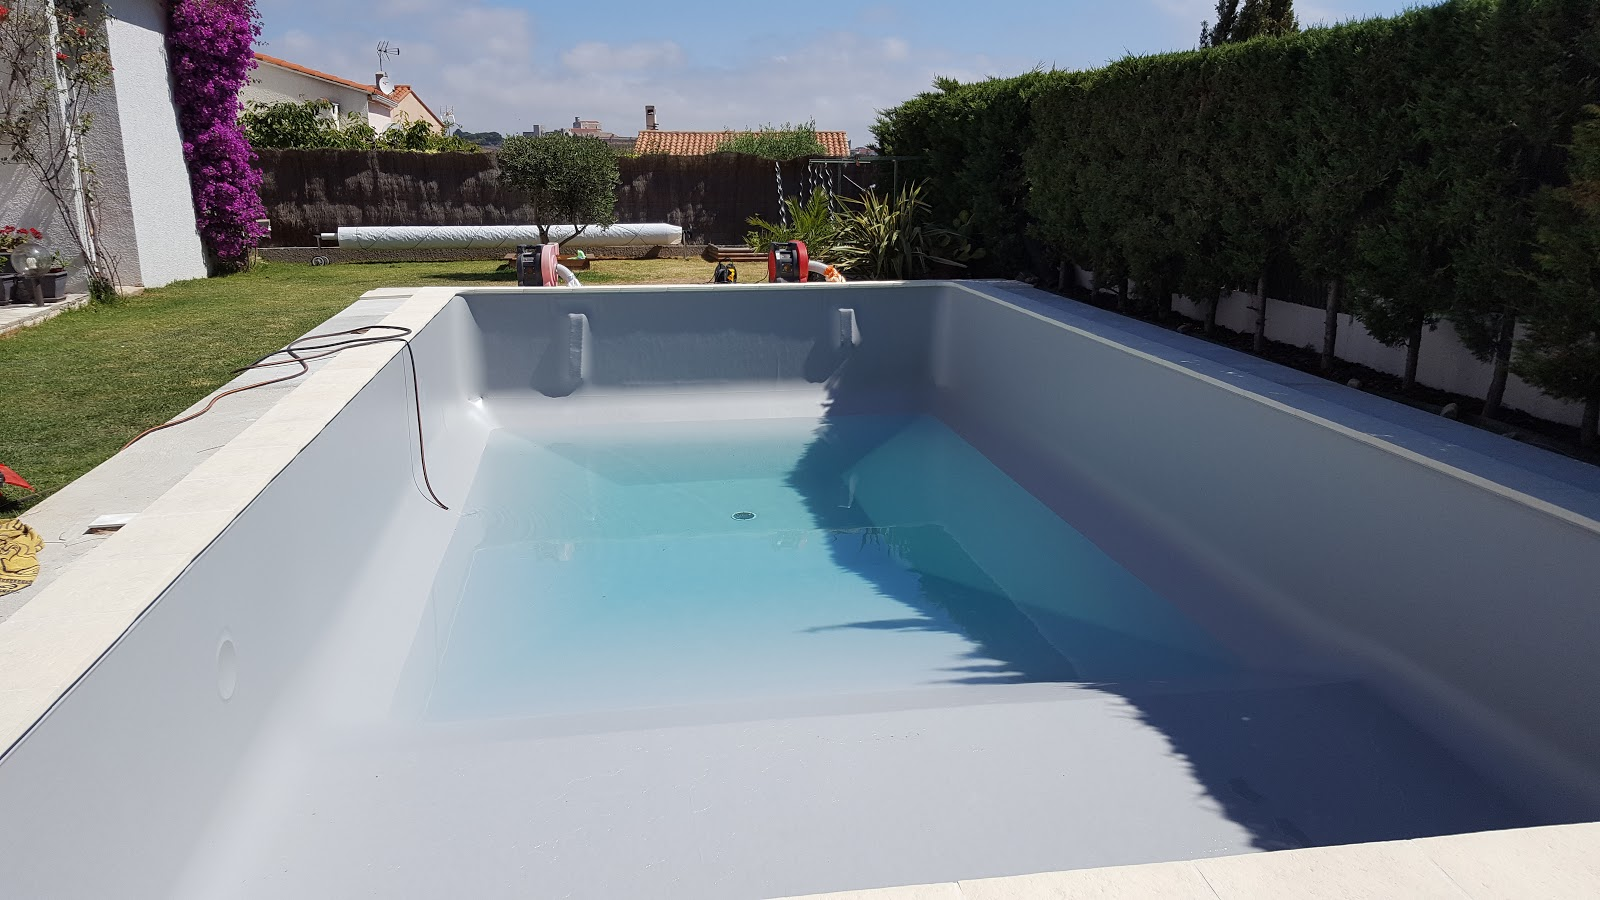 piscine perpignan 66 aquazur piscine installation r novation entretien de piscine 66 liner. Black Bedroom Furniture Sets. Home Design Ideas